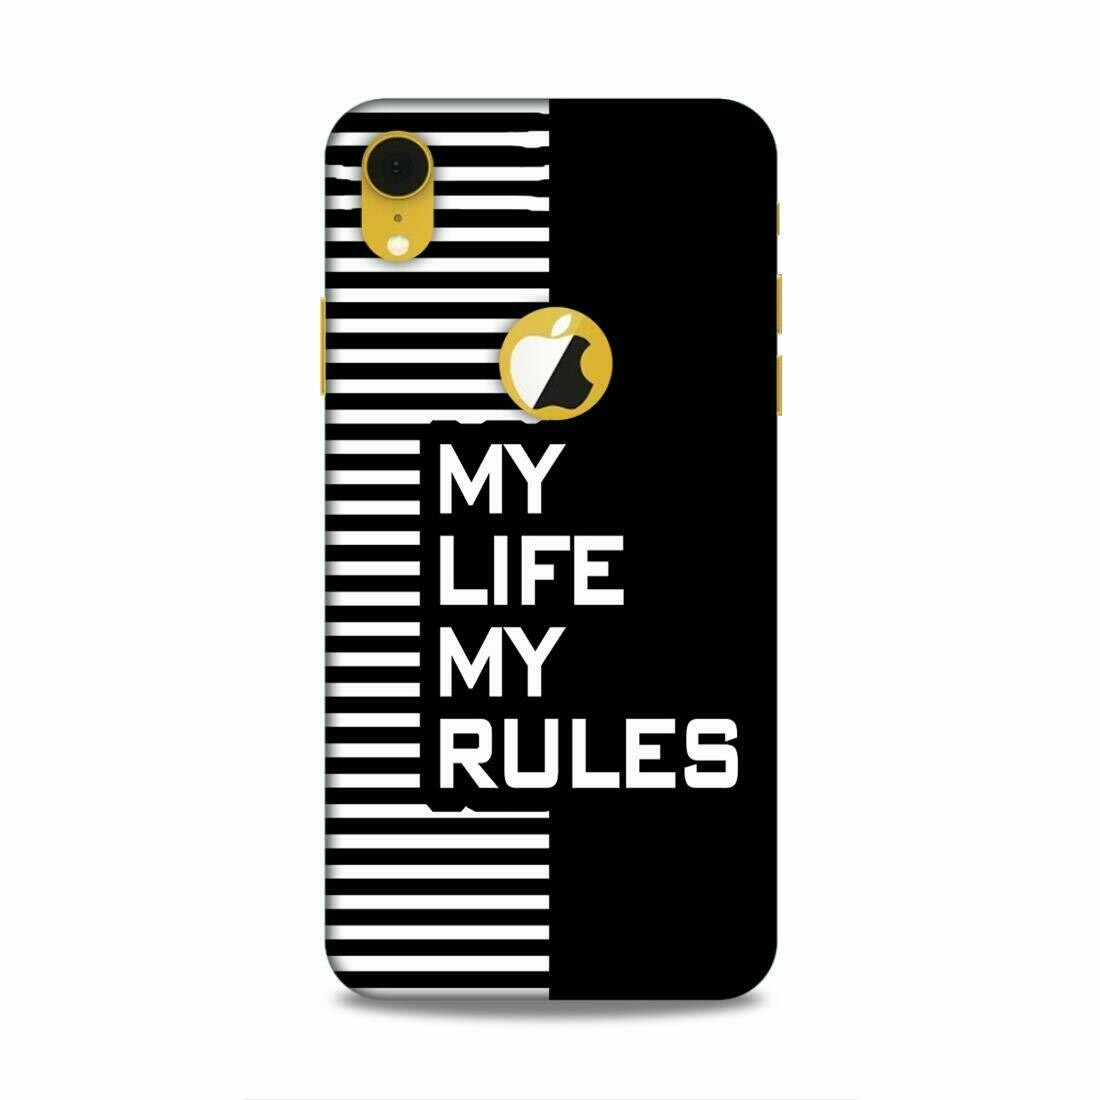 My Life My Rules Quote Polycarbonate Matte Finish Printed Designer, Premium Mobile Back case Cover for Apple iPhone XR Logo Cut